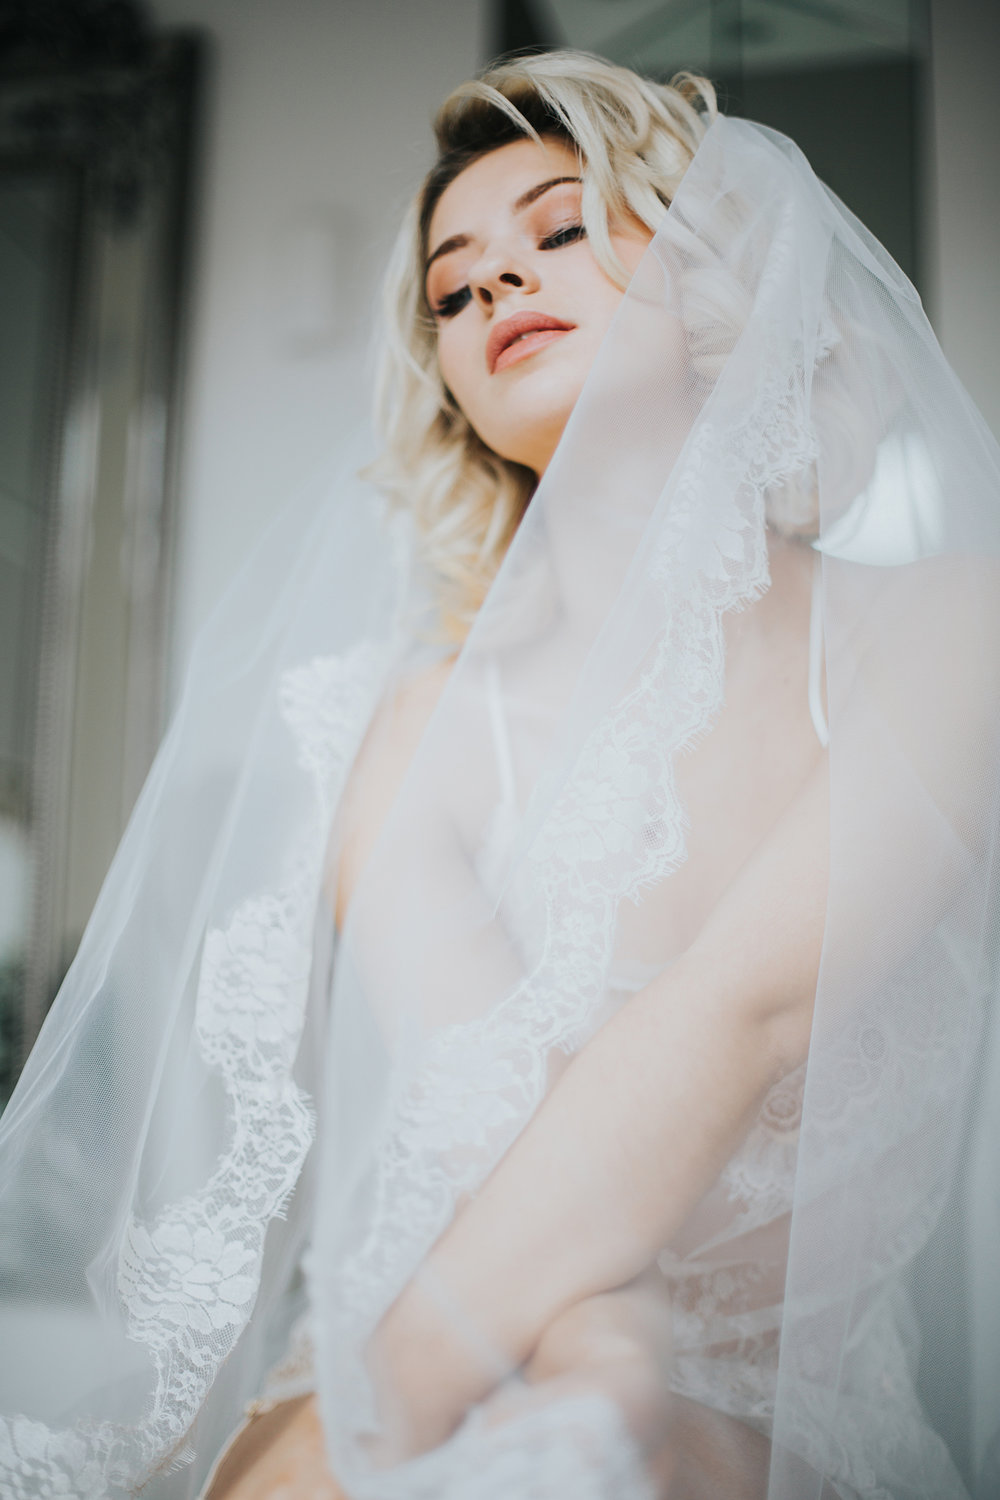 Joyce Young inspired Bridal Boudoir, Glasgow Scotland Fine Art Wedding Photographer, Bridal Boudoir, In the Name of Love Photography